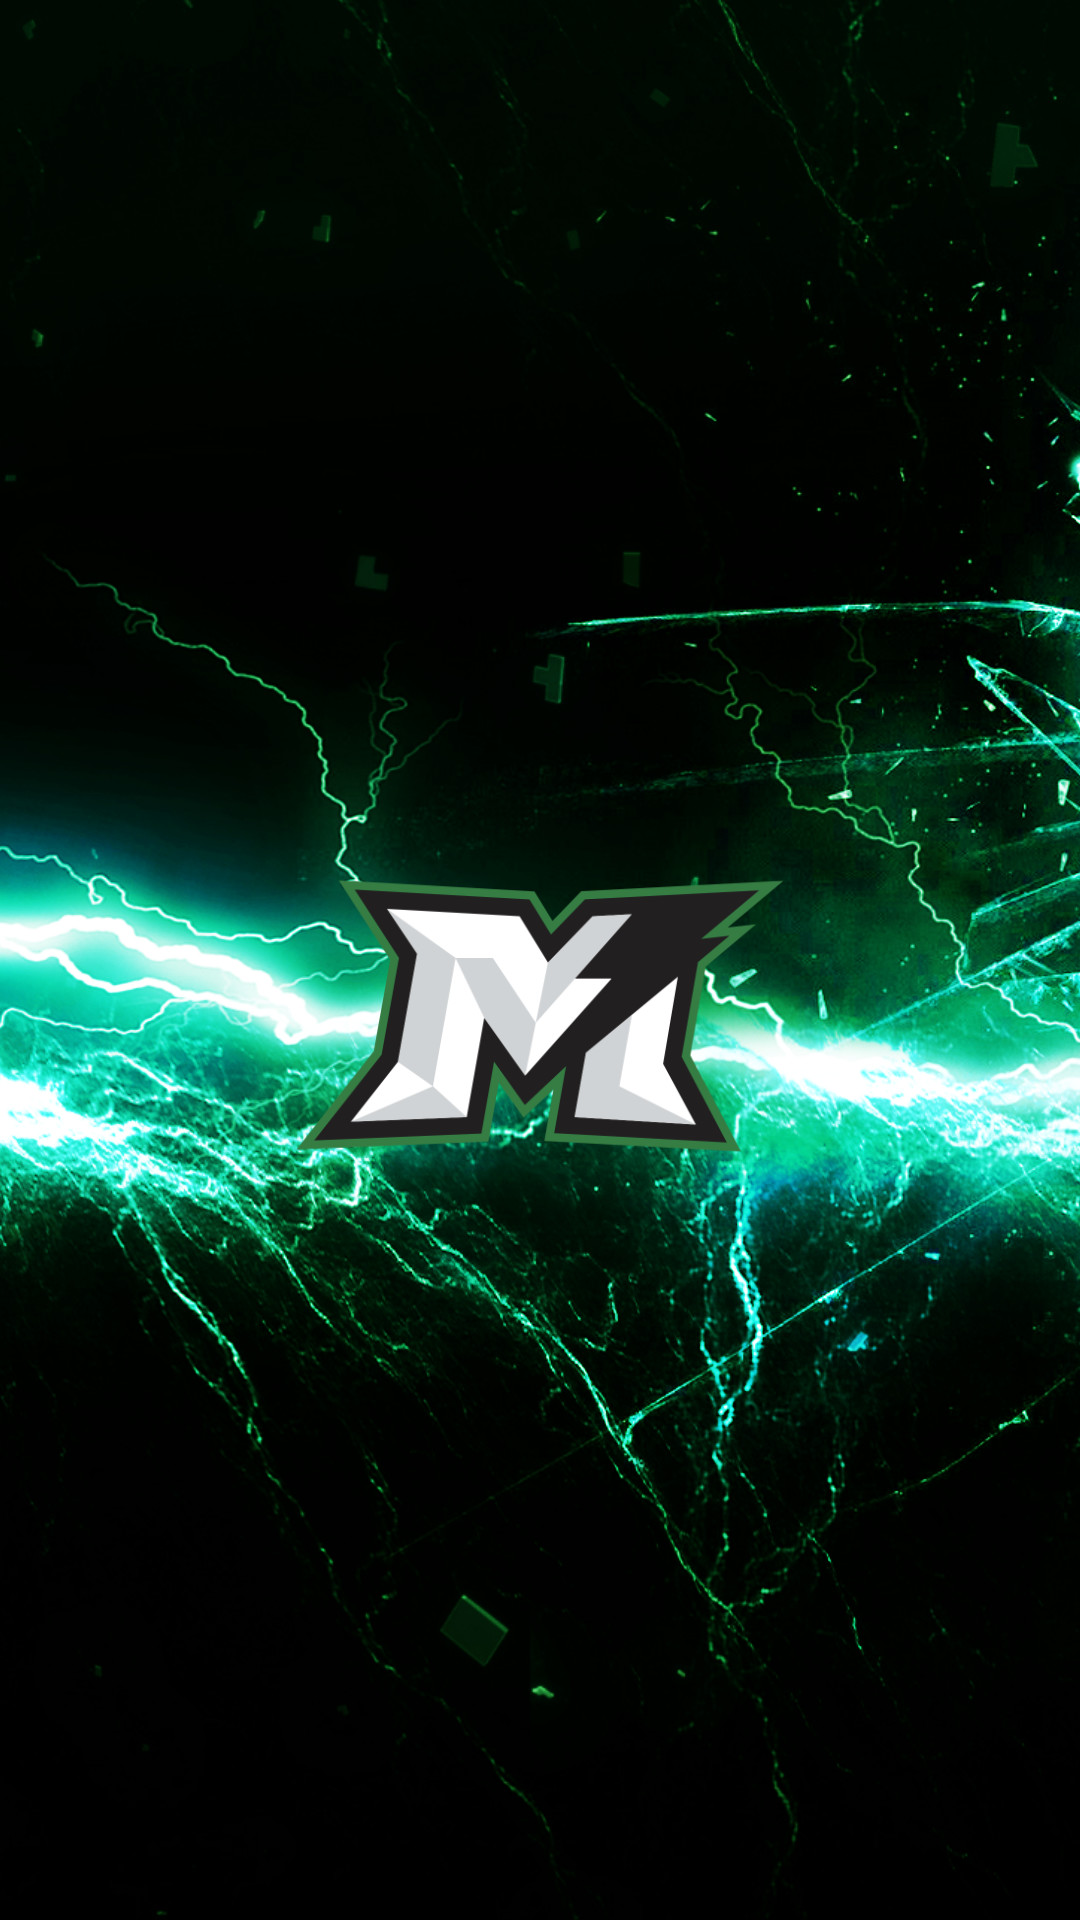 Res: 1080x1920, For more Thunder wallpapers, visit us on Facebook.